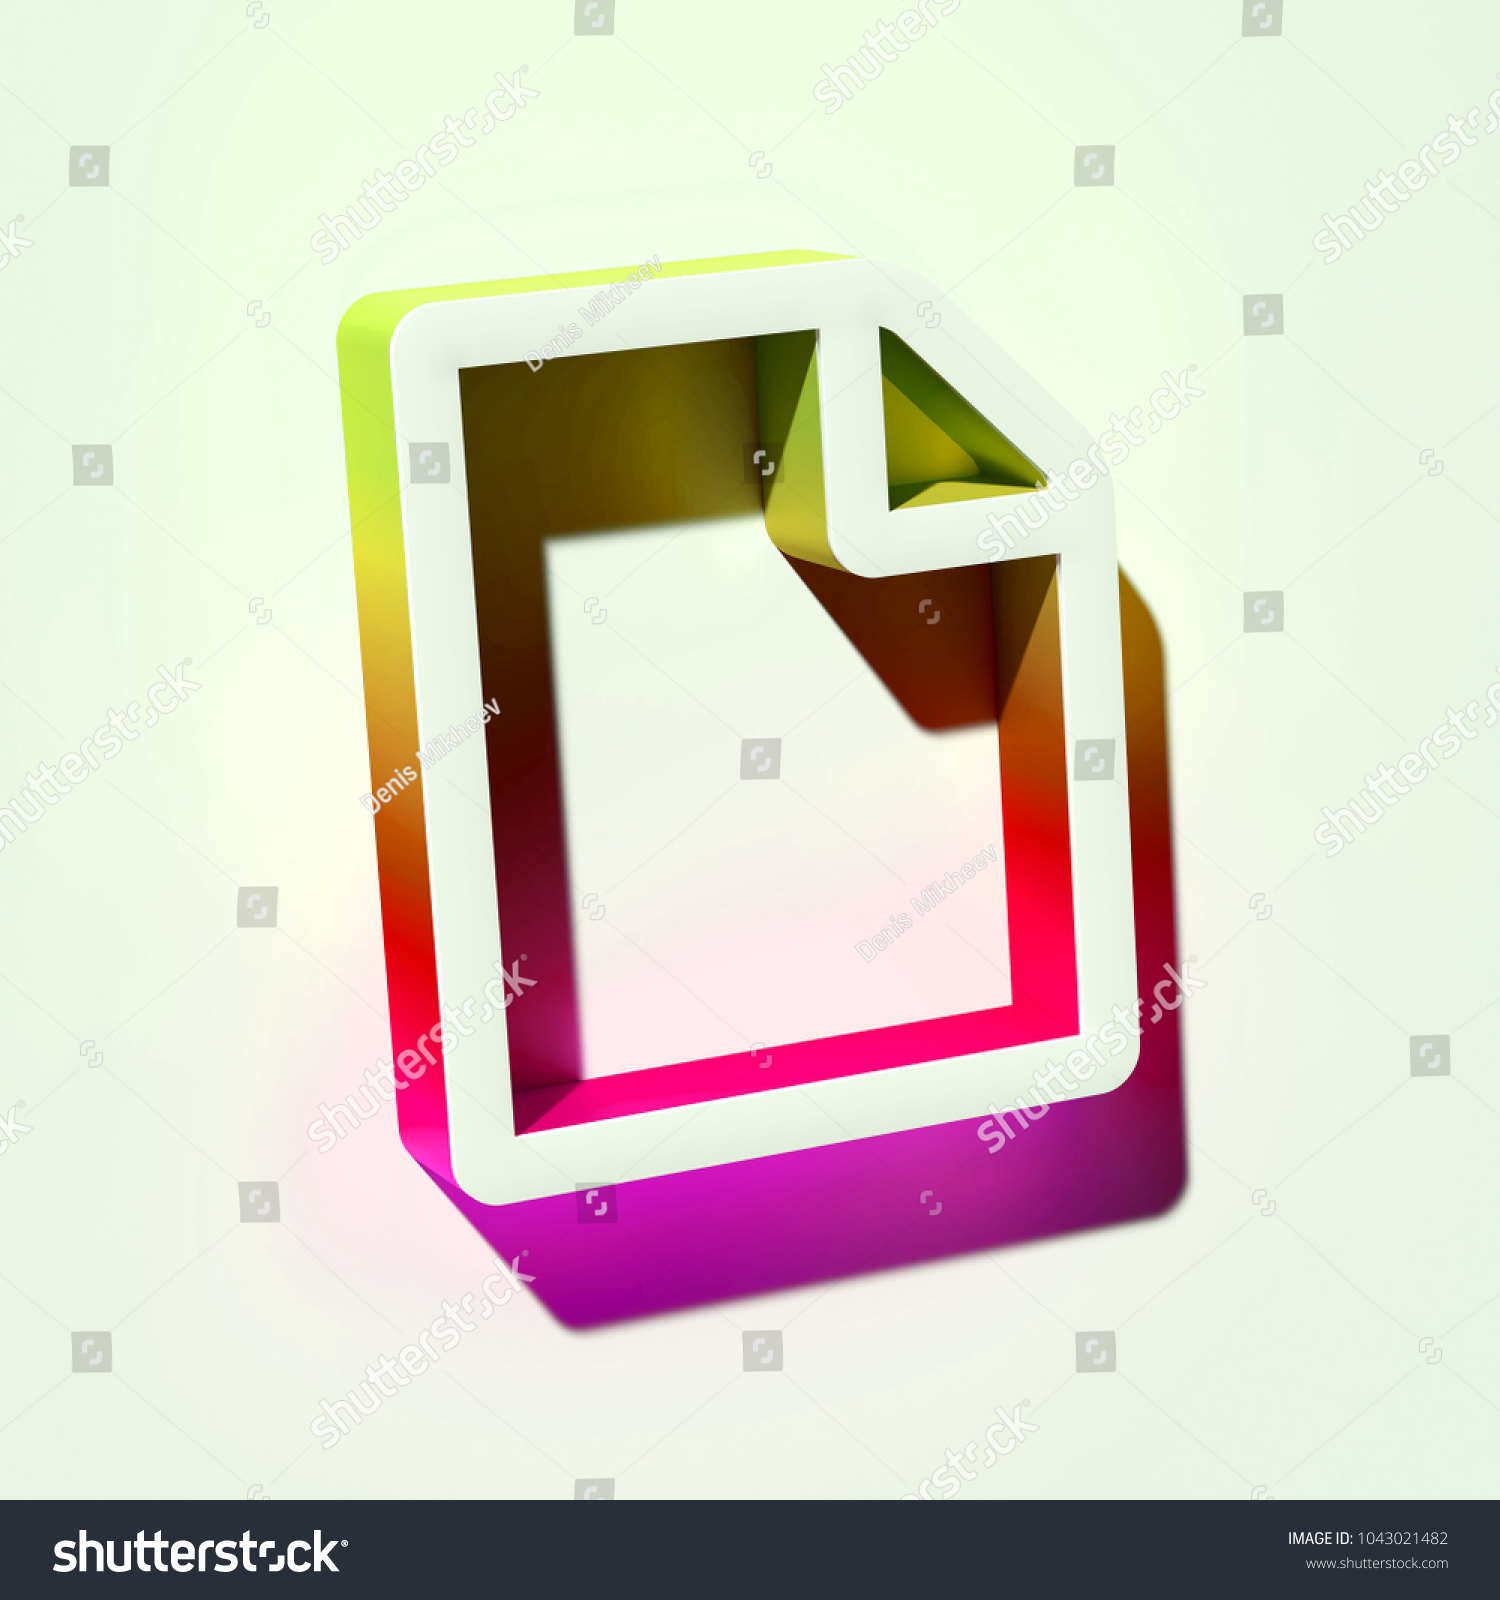 White File Icon 3 D Illustration White Stock Illustration 1043021482